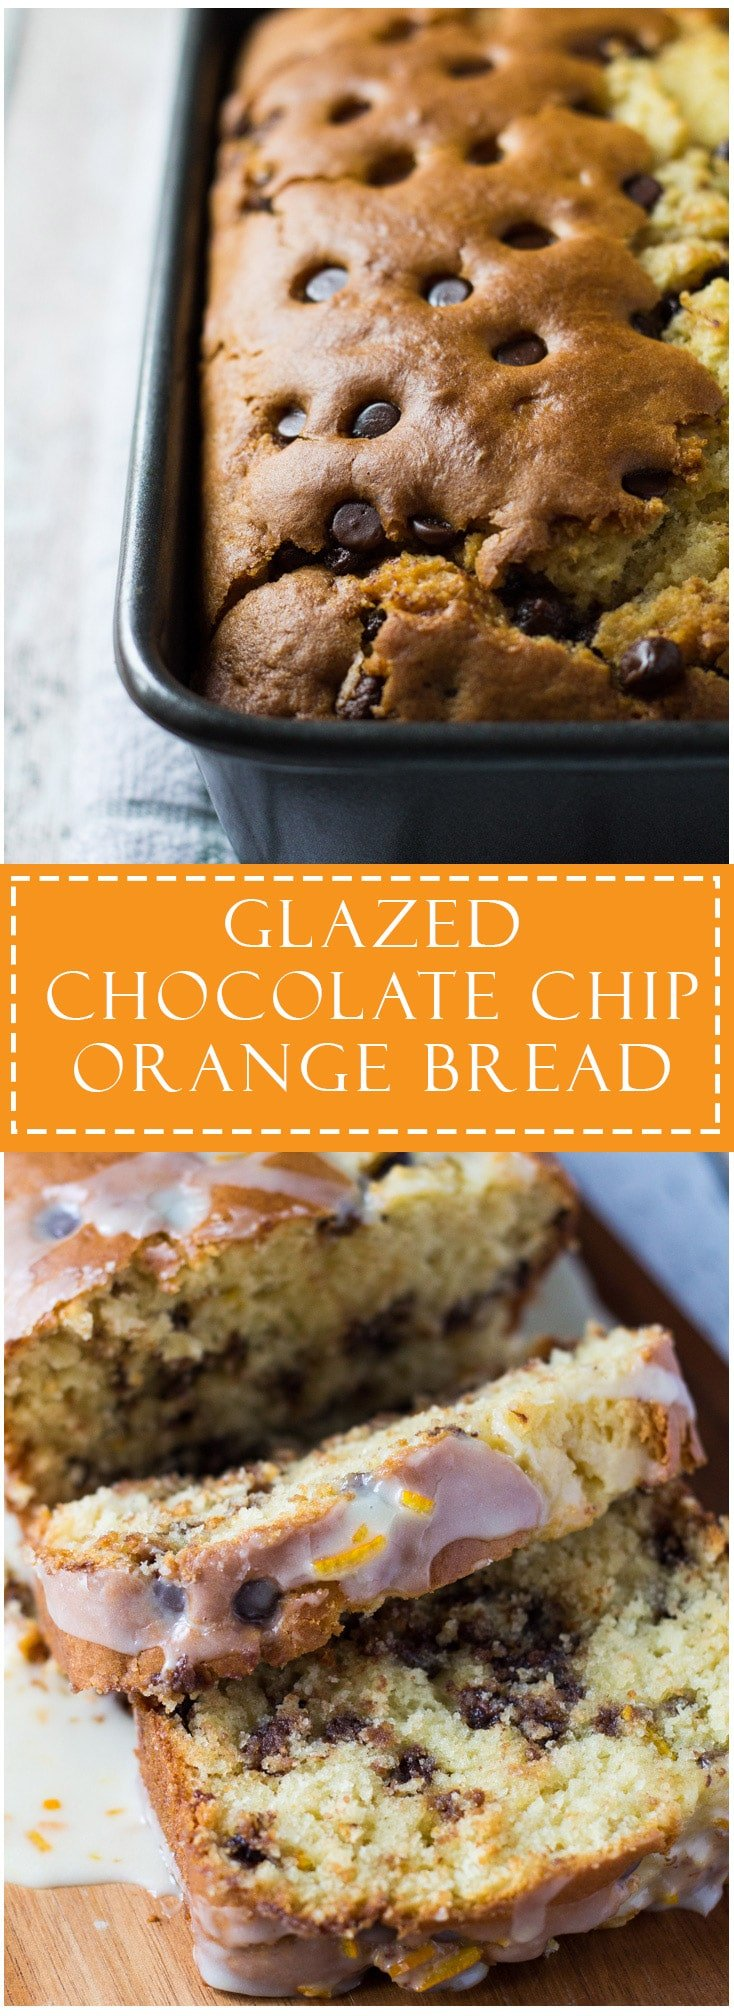 Glazed Chocolate Chip Orange Bread